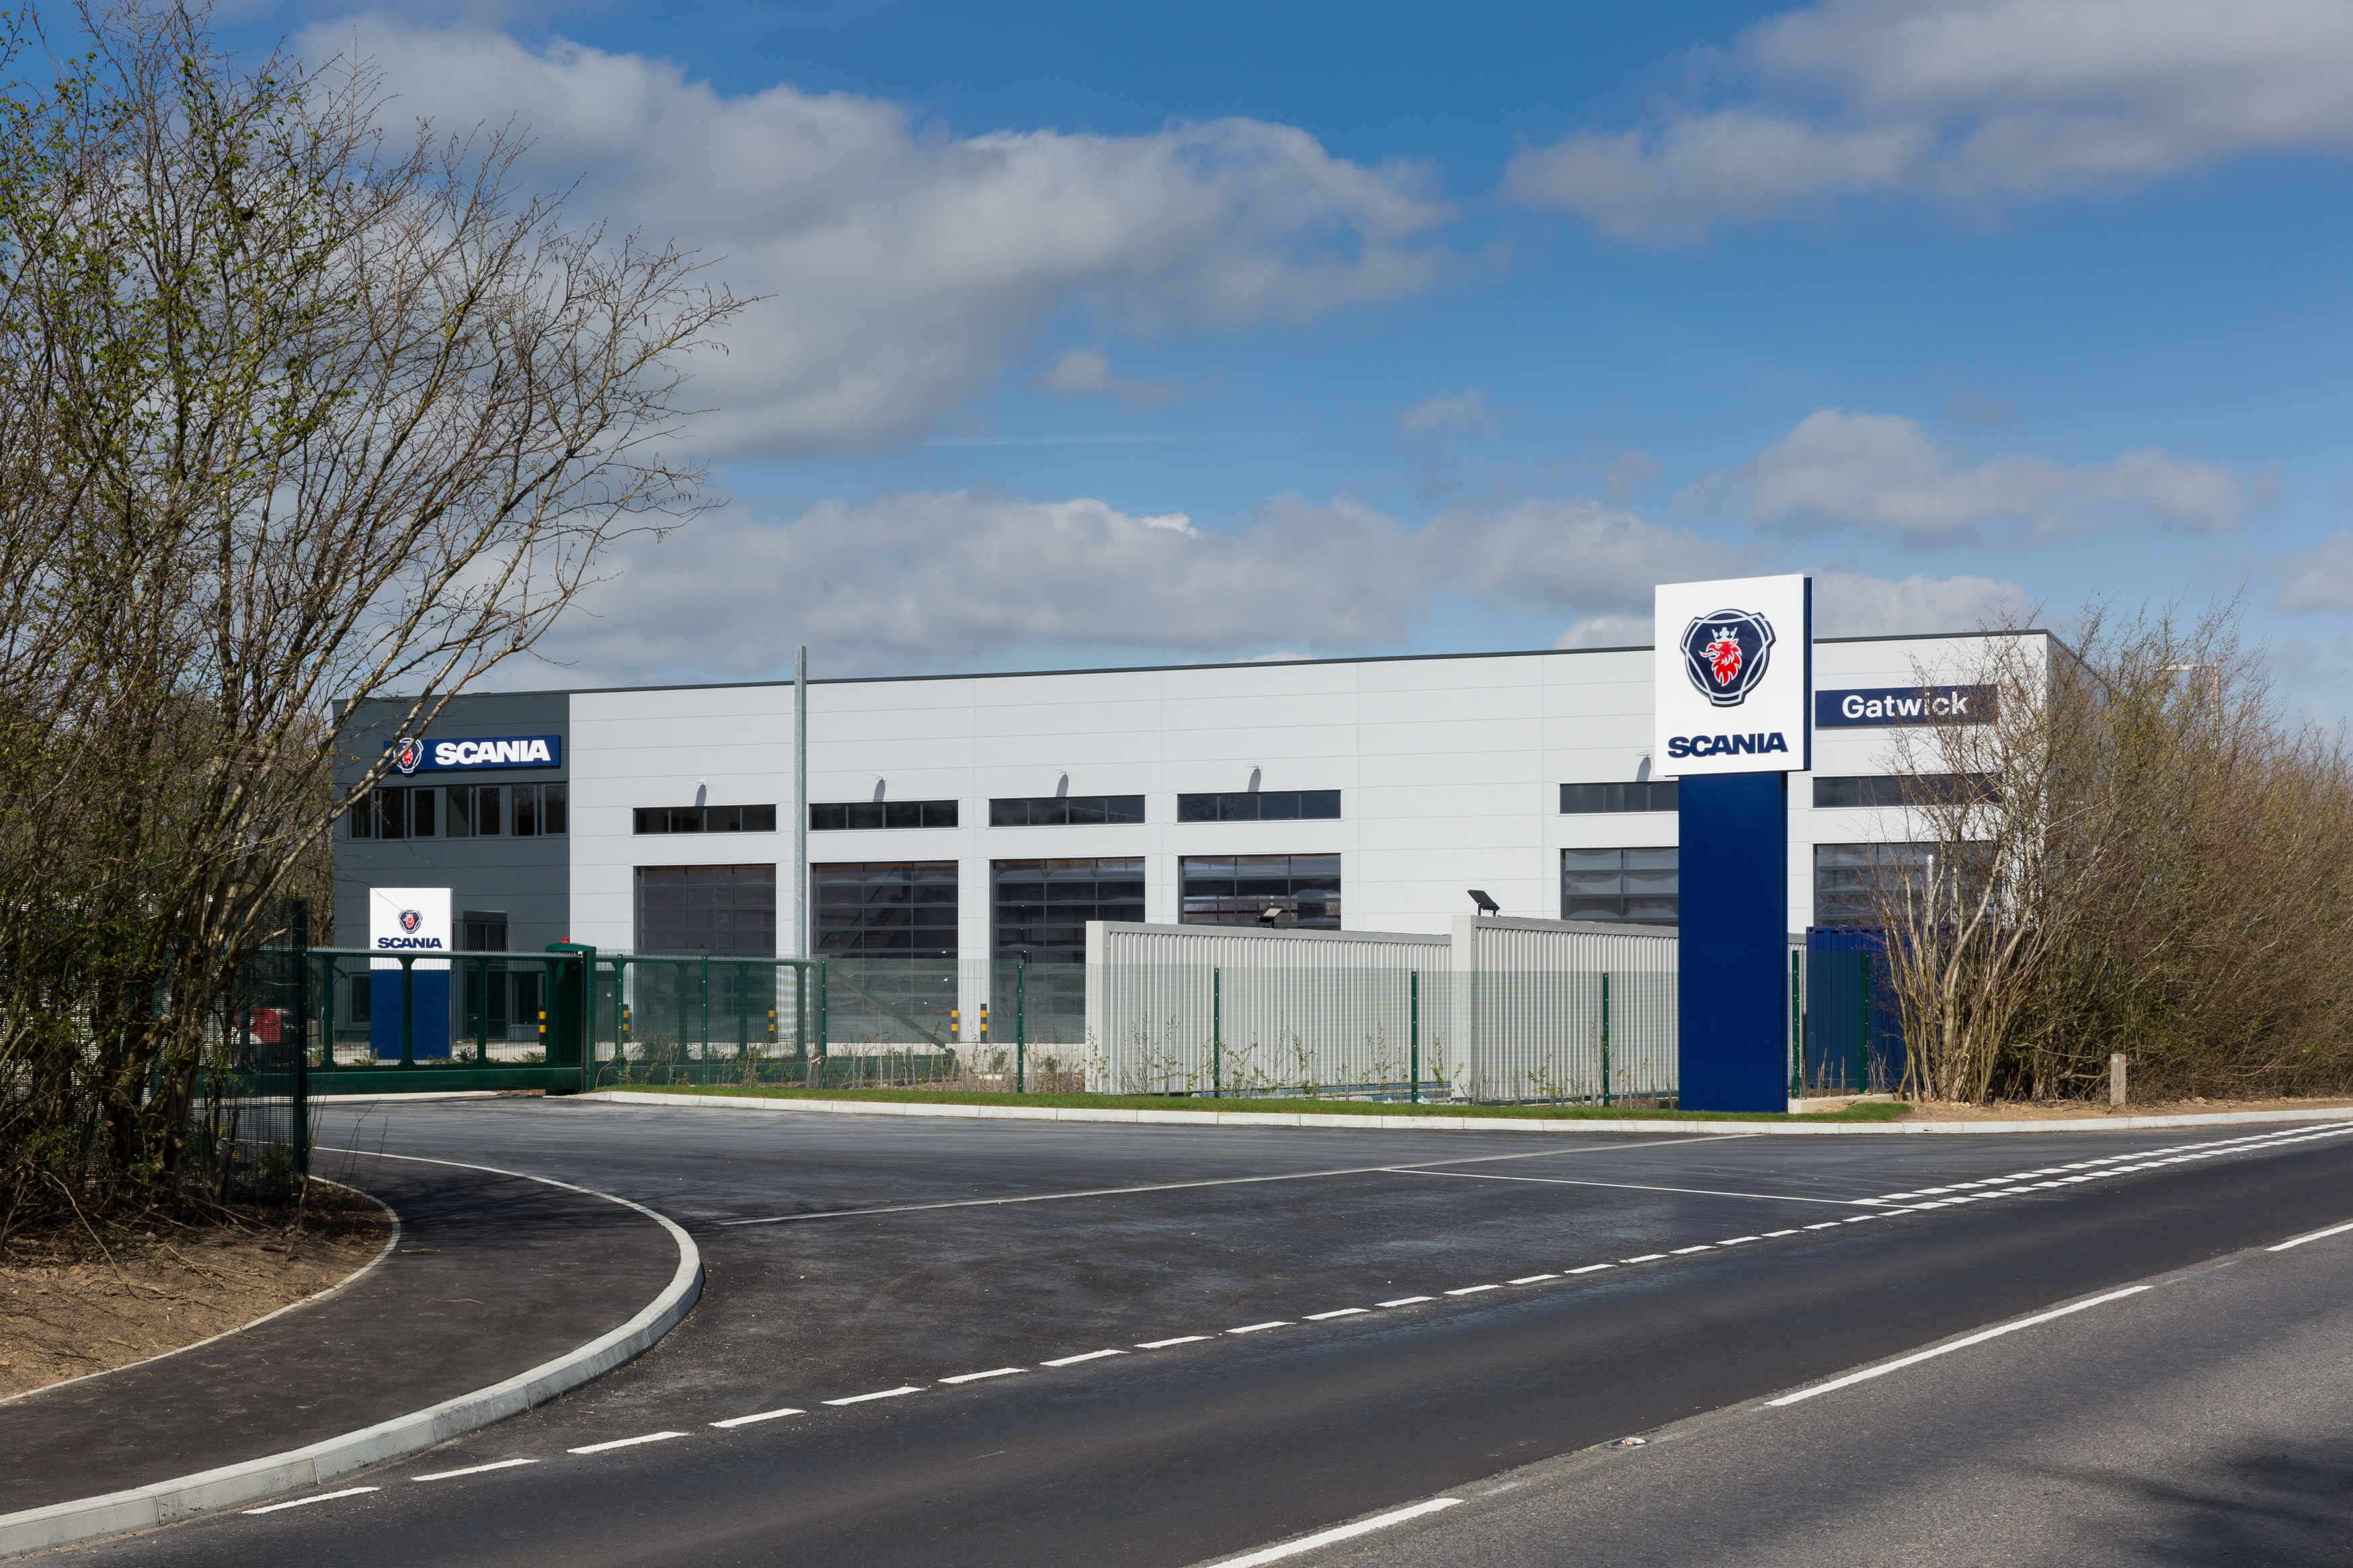 Scania's new state-of-the-art Gatwick premises inaugurated